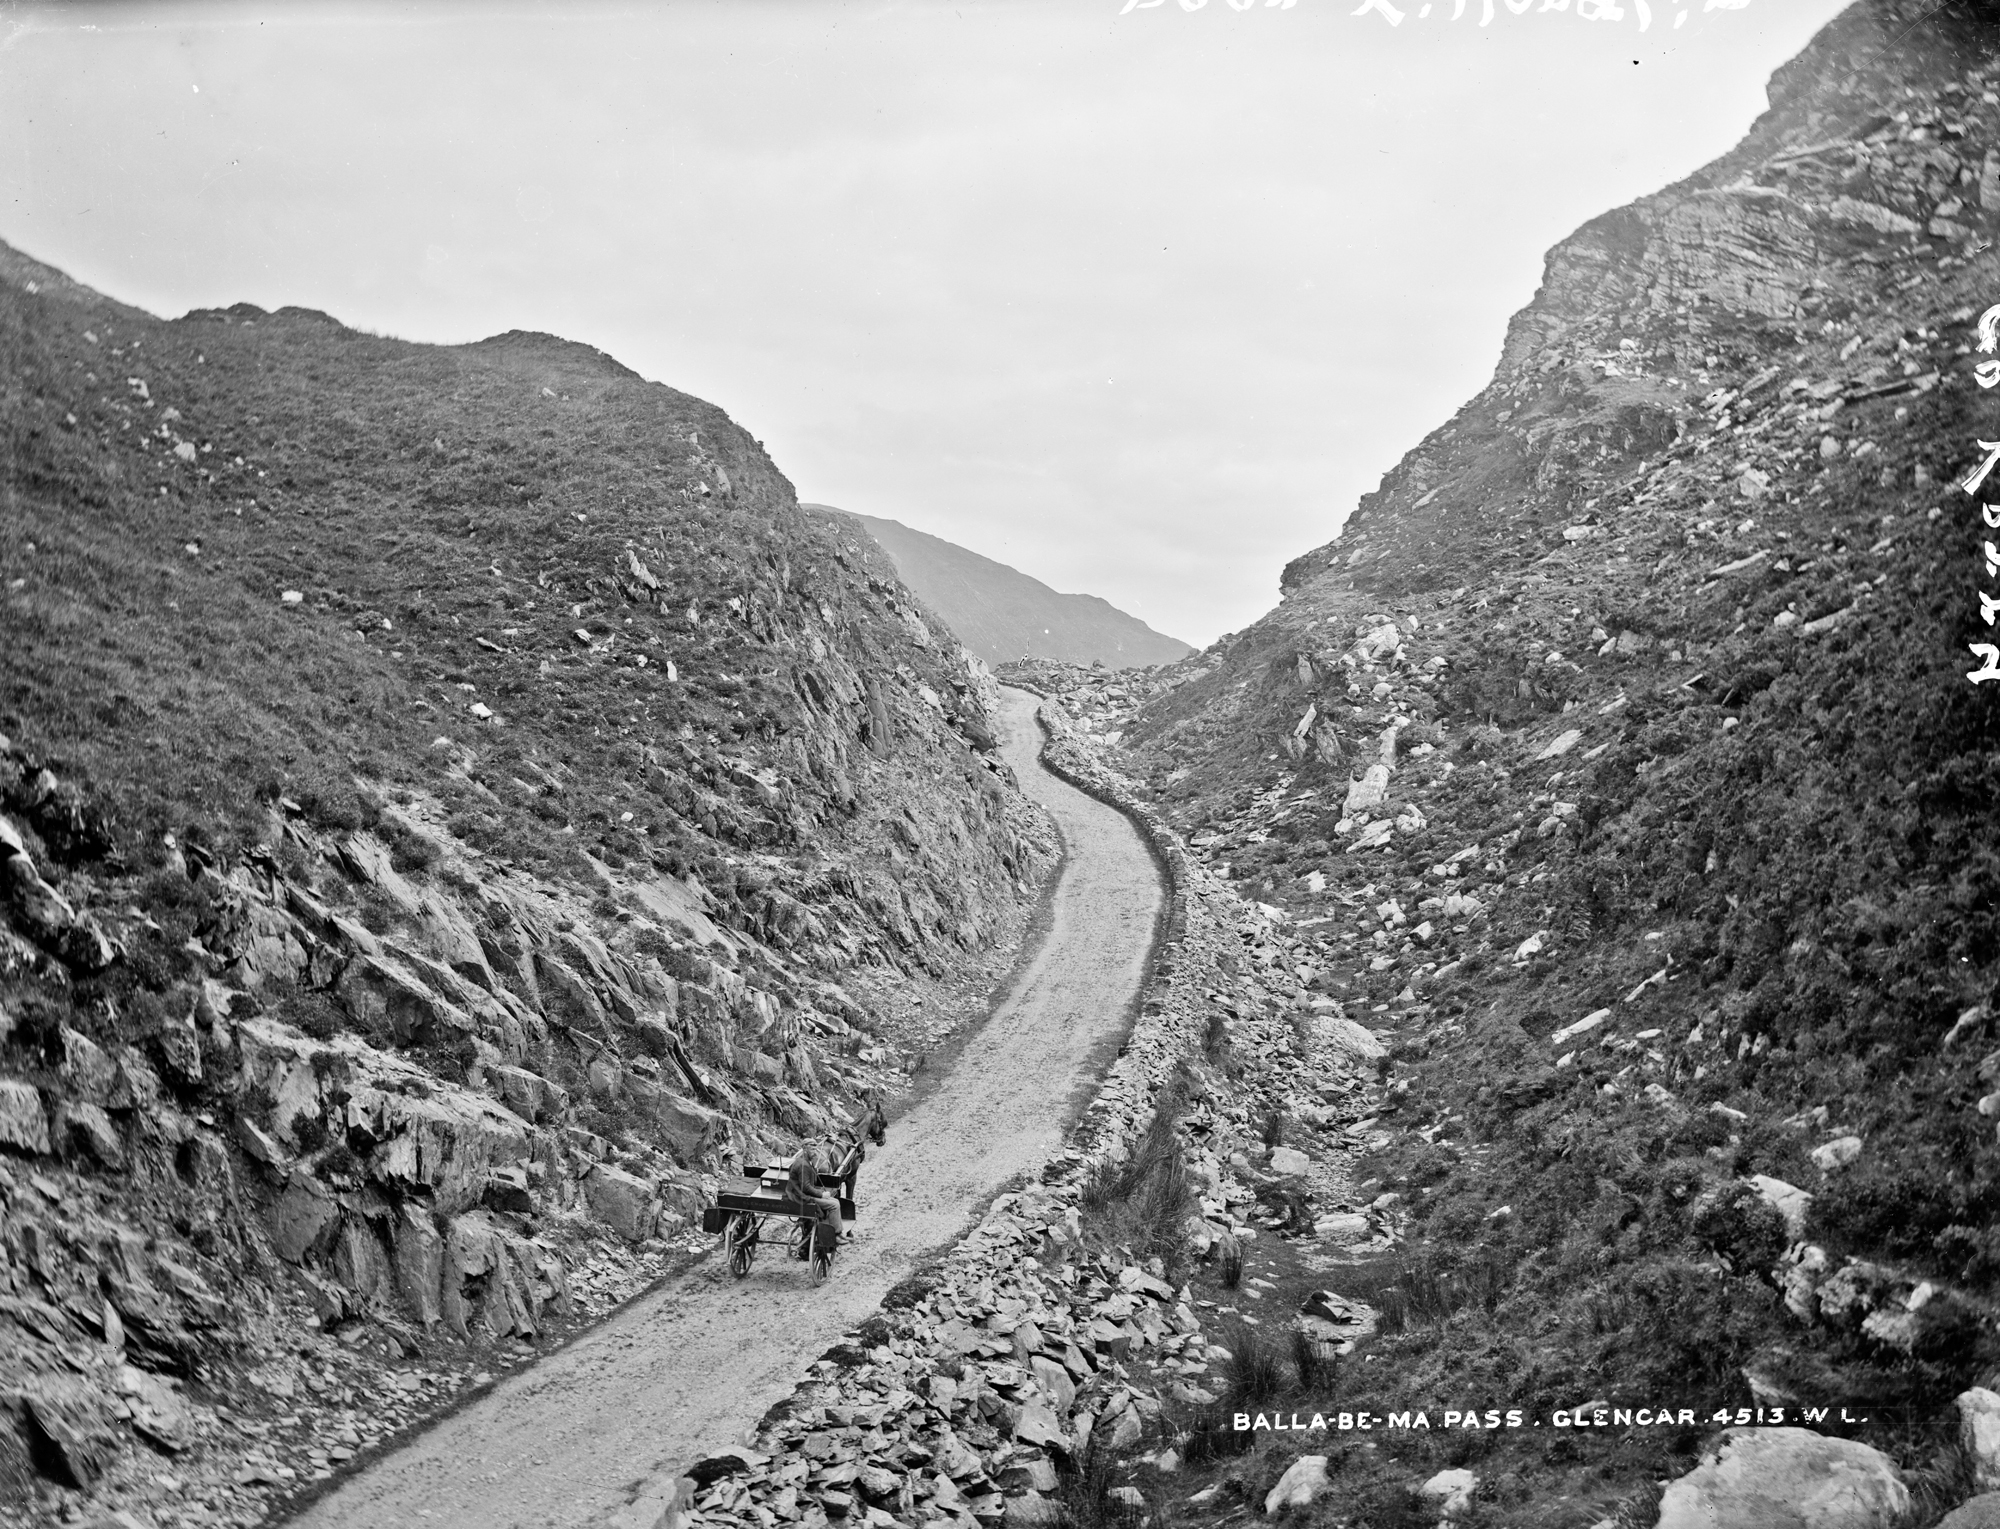 Ballaghbema Pass, Glencar, Co. Kerry